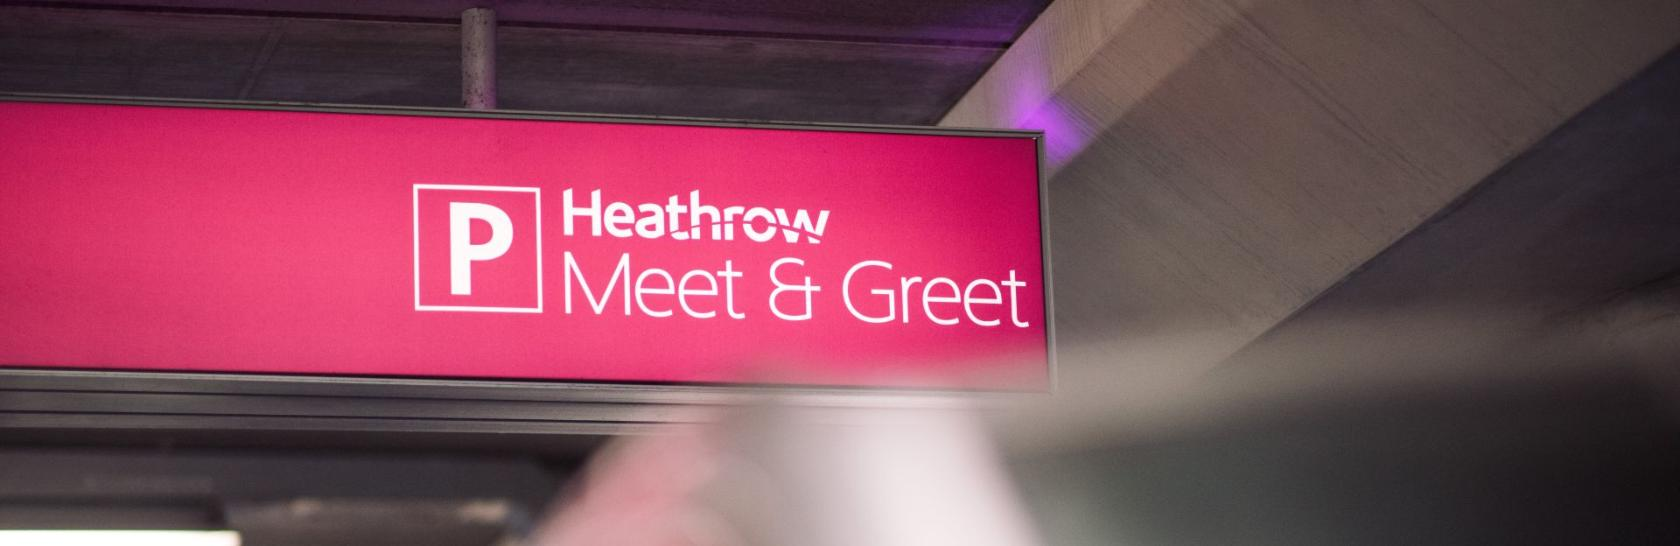 Heathrow best meet and greet